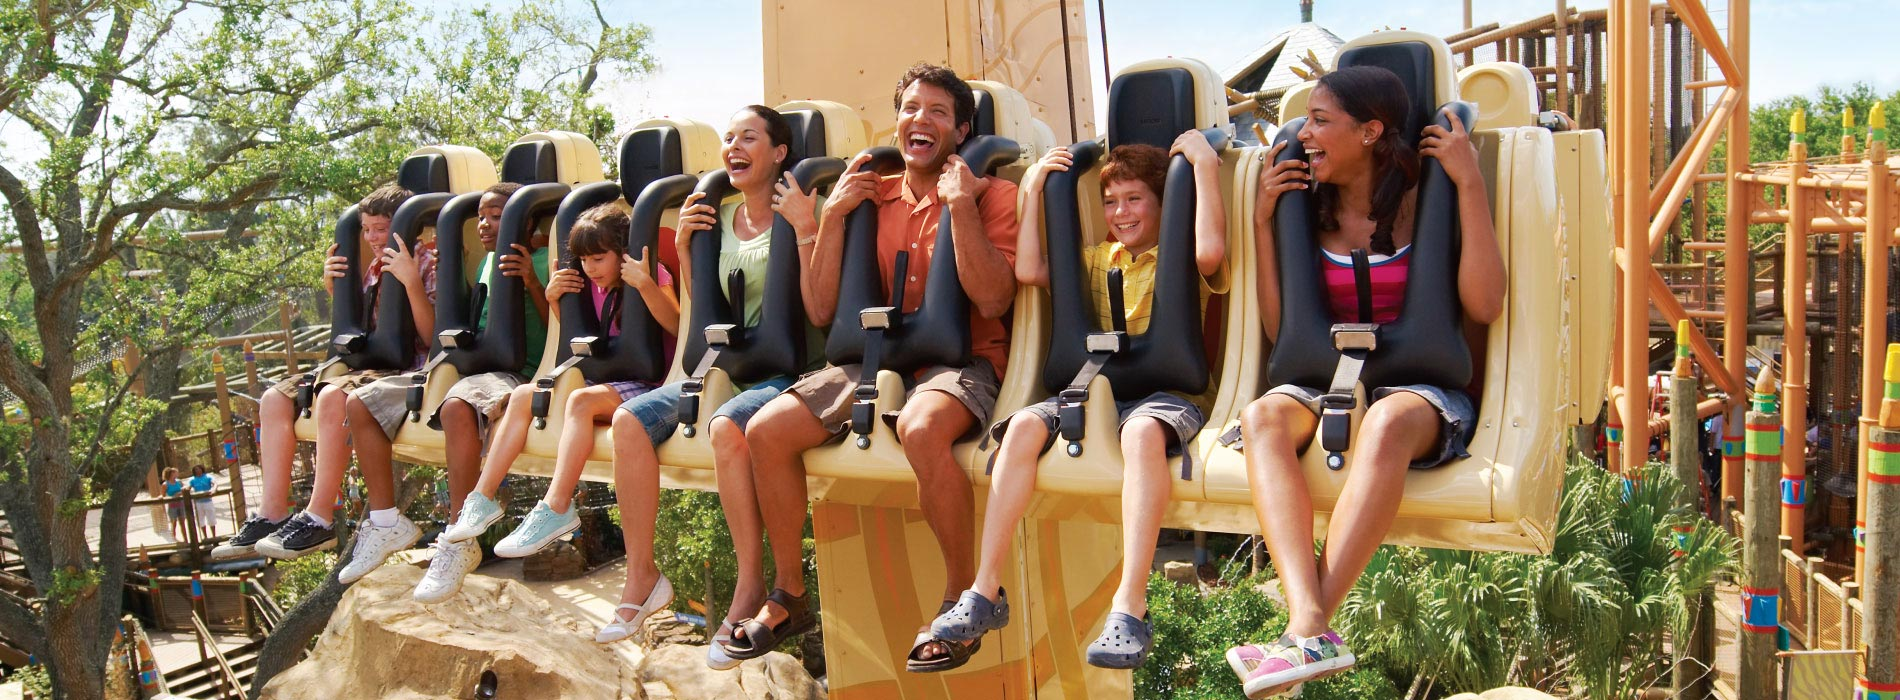 Ride the Wild Surge at Busch Gardens Tampa Bay